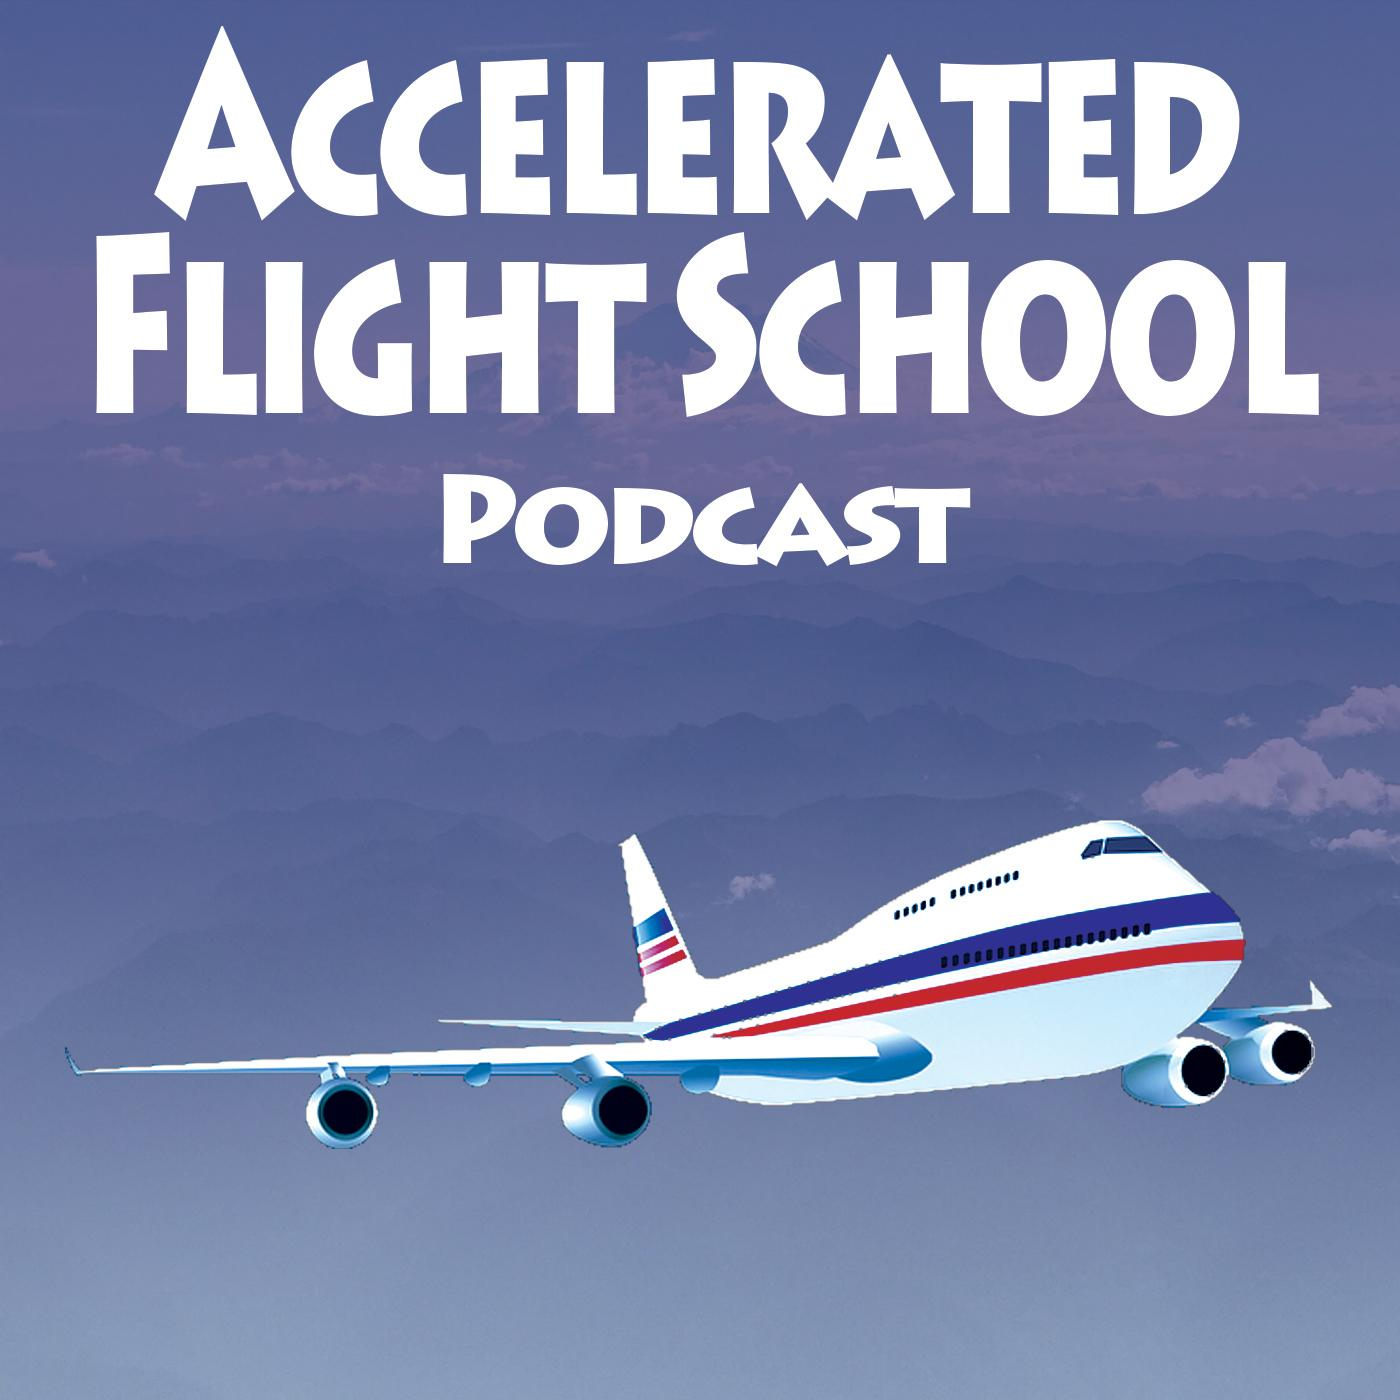 Accelerated Flight School Podcast - Dan Freeman | Listen Notes